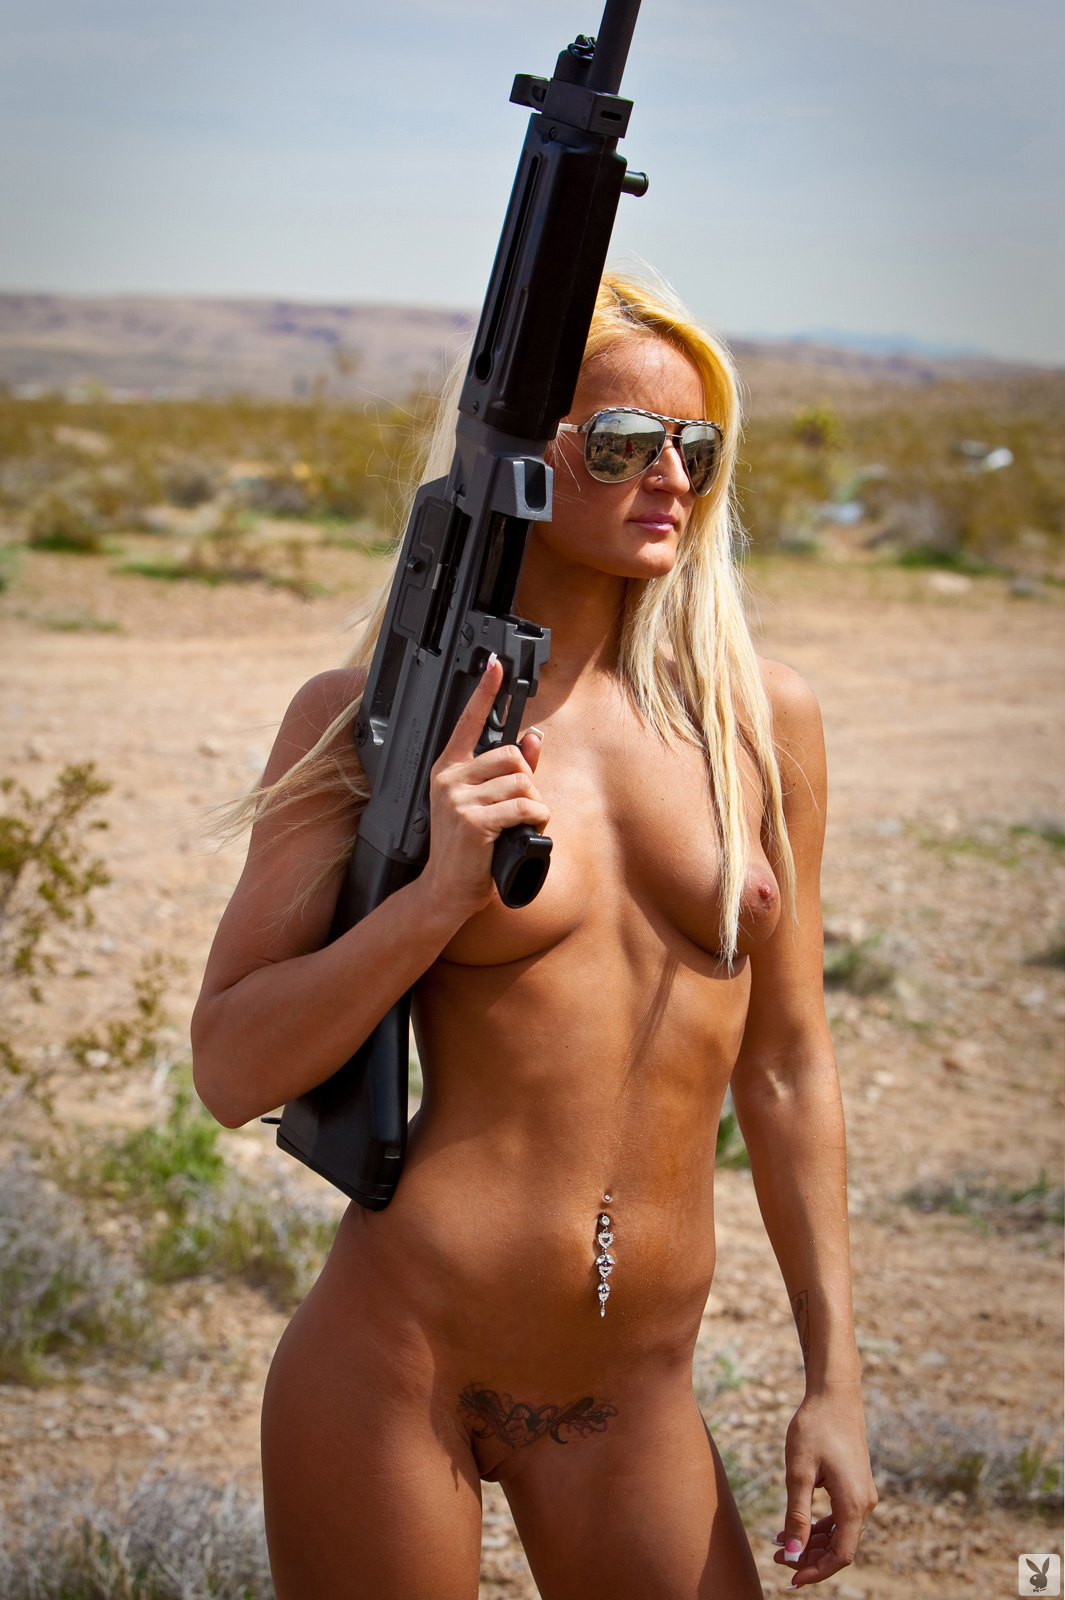 playboy-badass-nude-episode-01-guns-desert-04